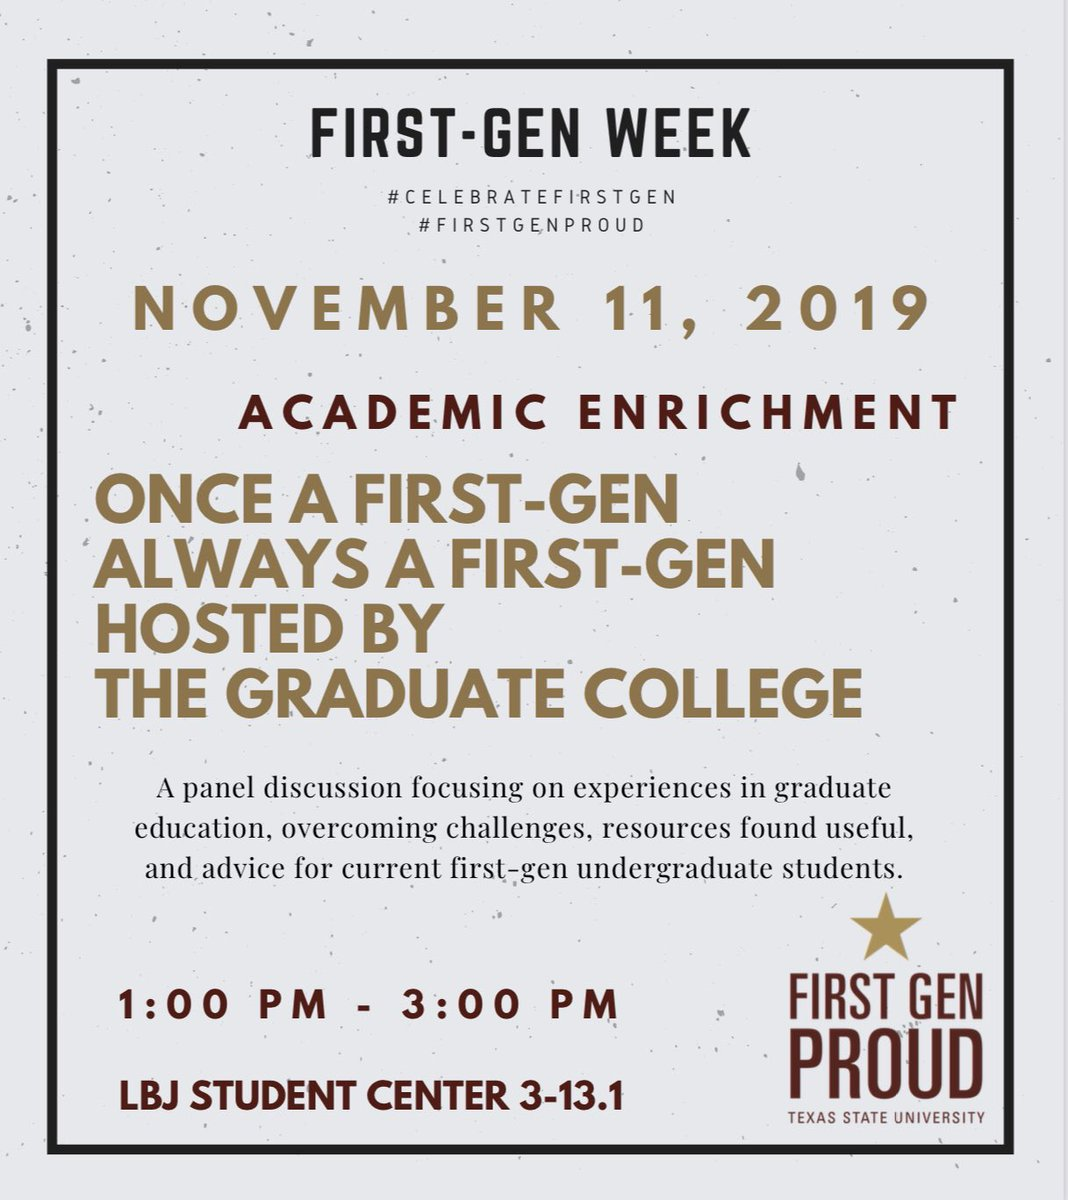 What's Up Bobcats 😼 Happening now is out last event for First Gen Week hosted by The Graduate College! #FirstGenProud #CelebrateFirstGen ⭐️